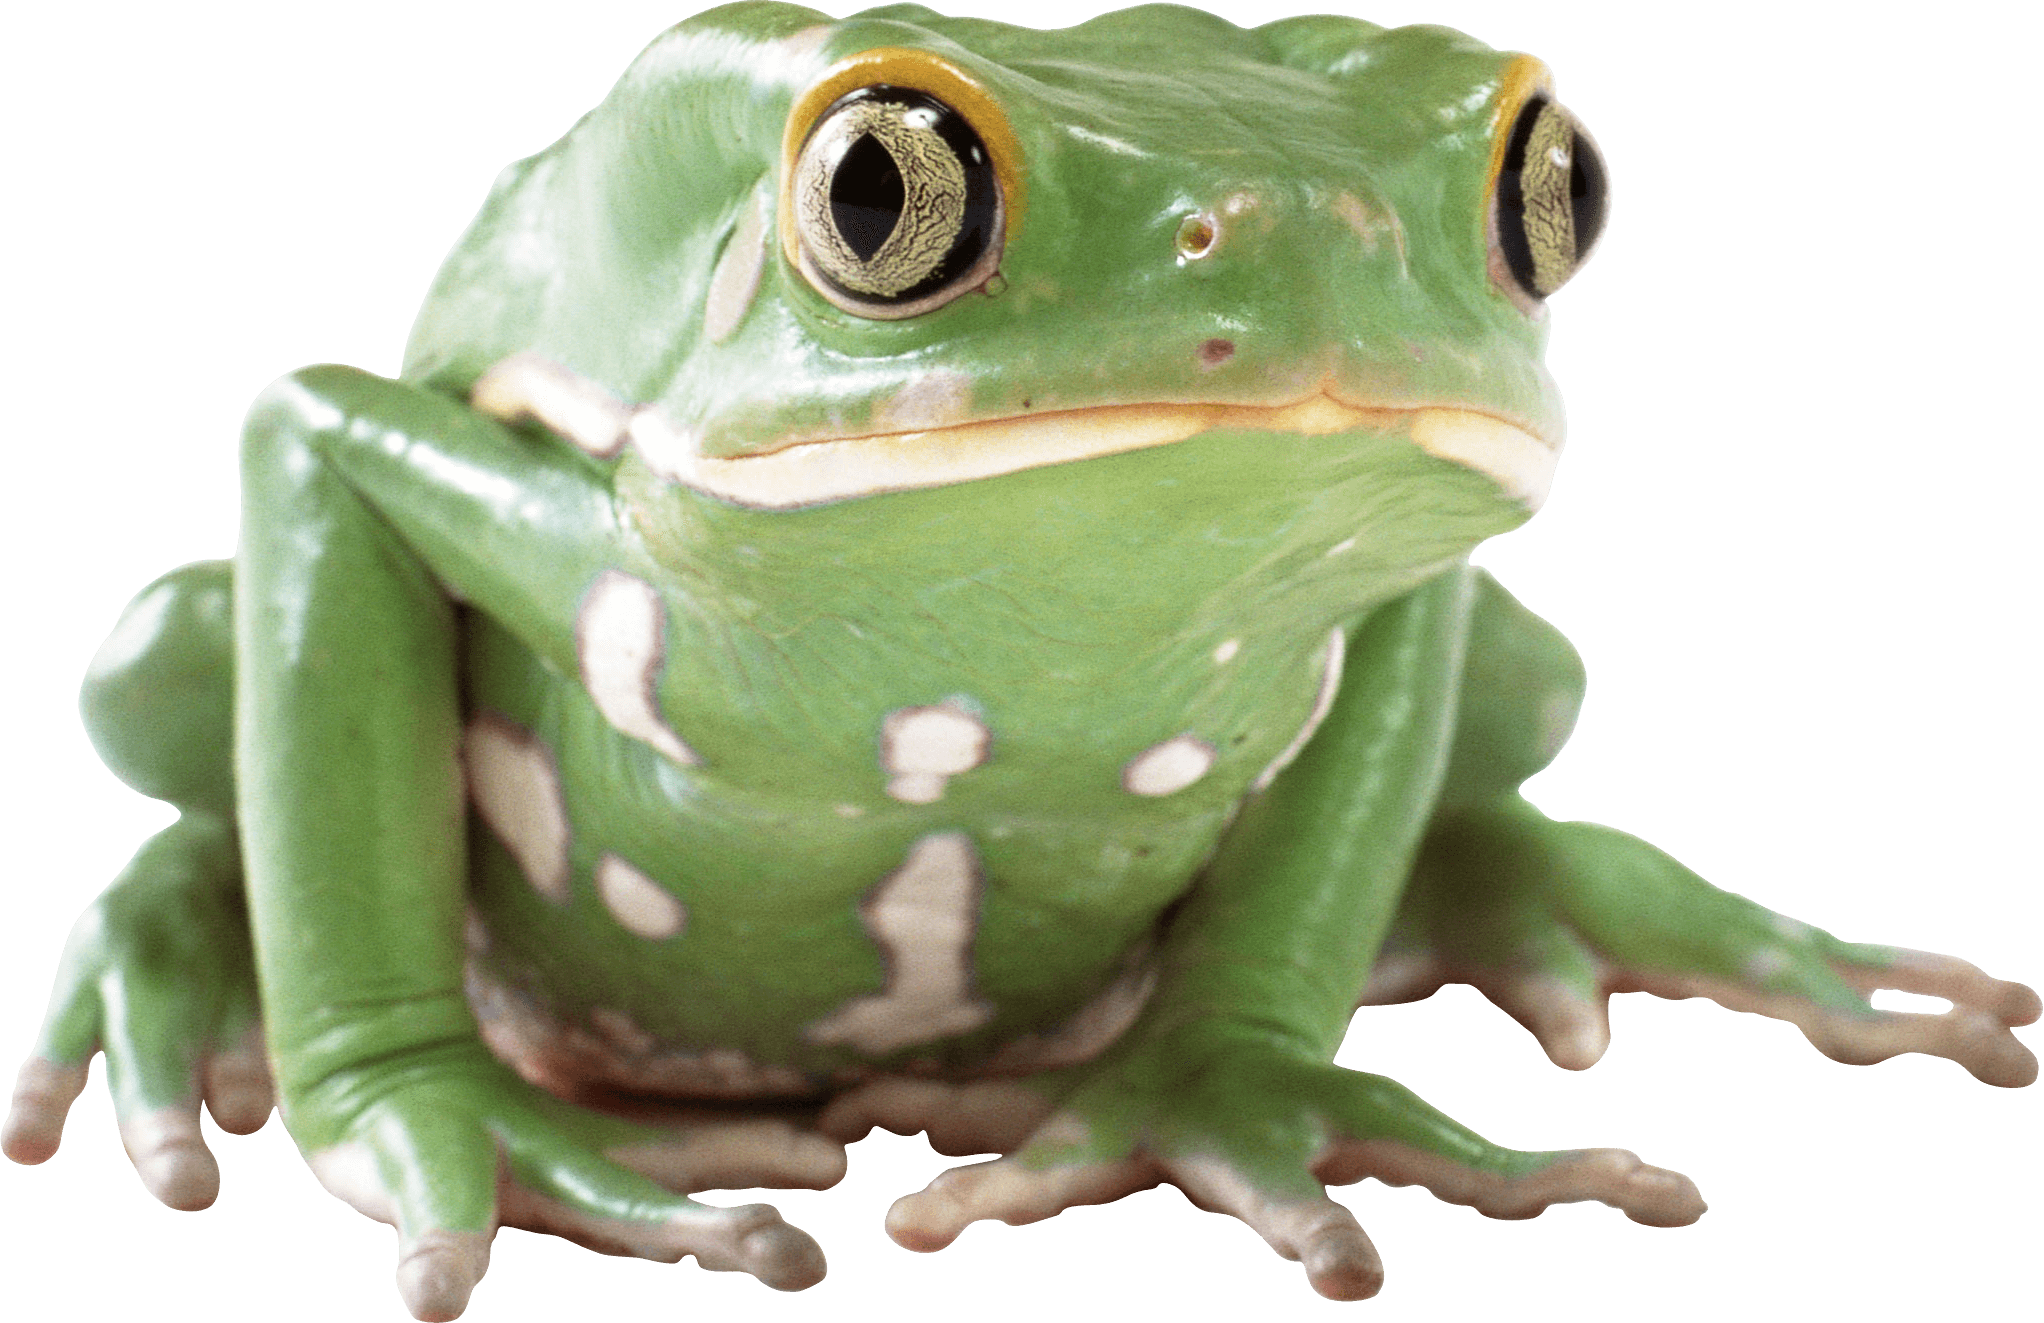 green toad PNG Image